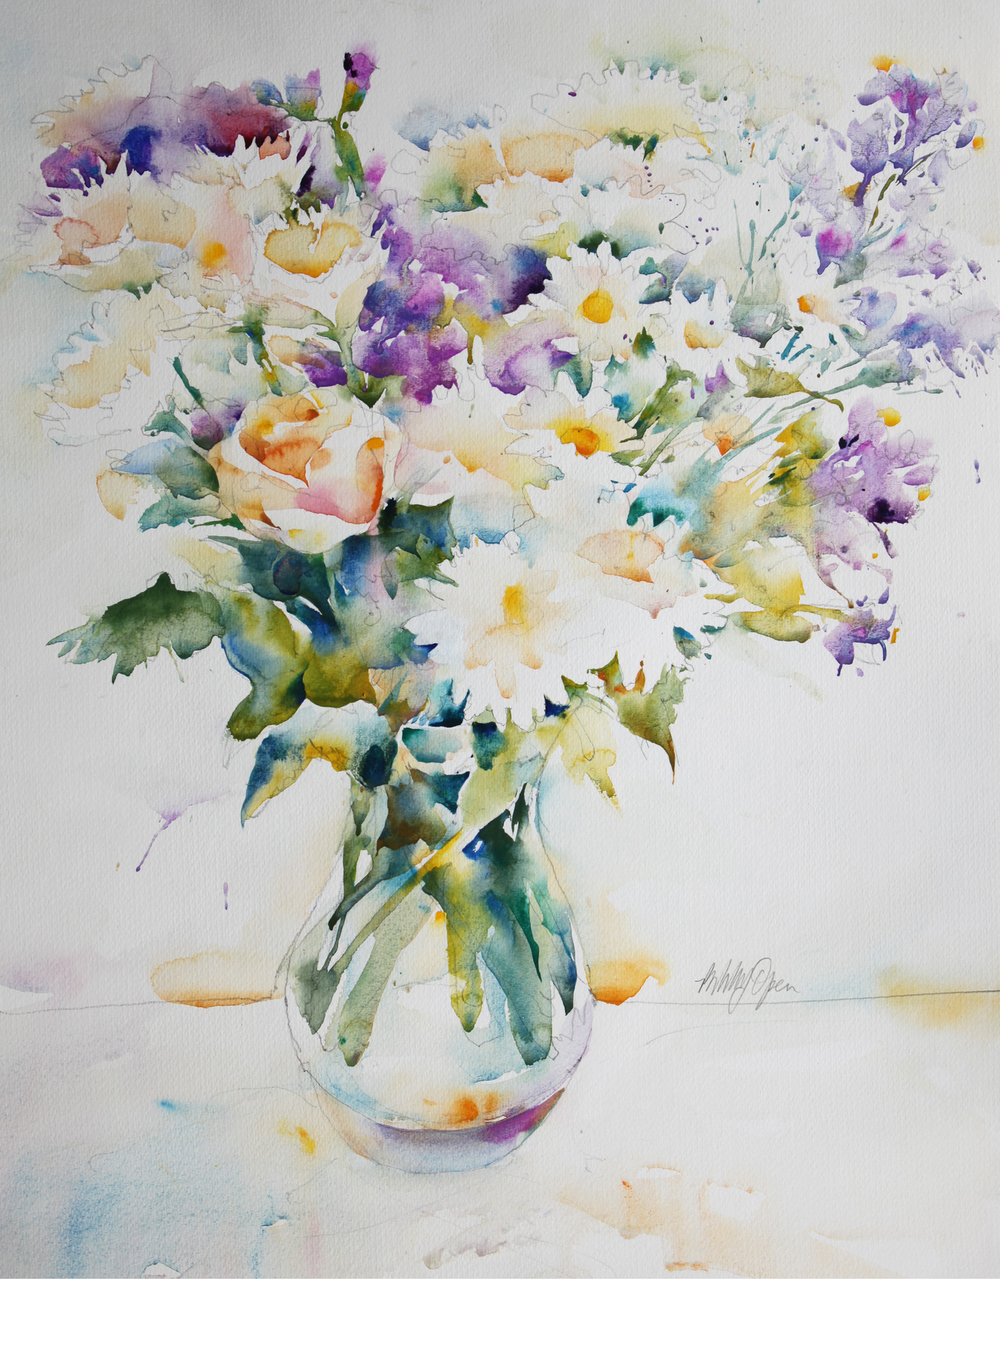 Arrangement with White Rose and Daisies watercolour 625 x 750 mm £850